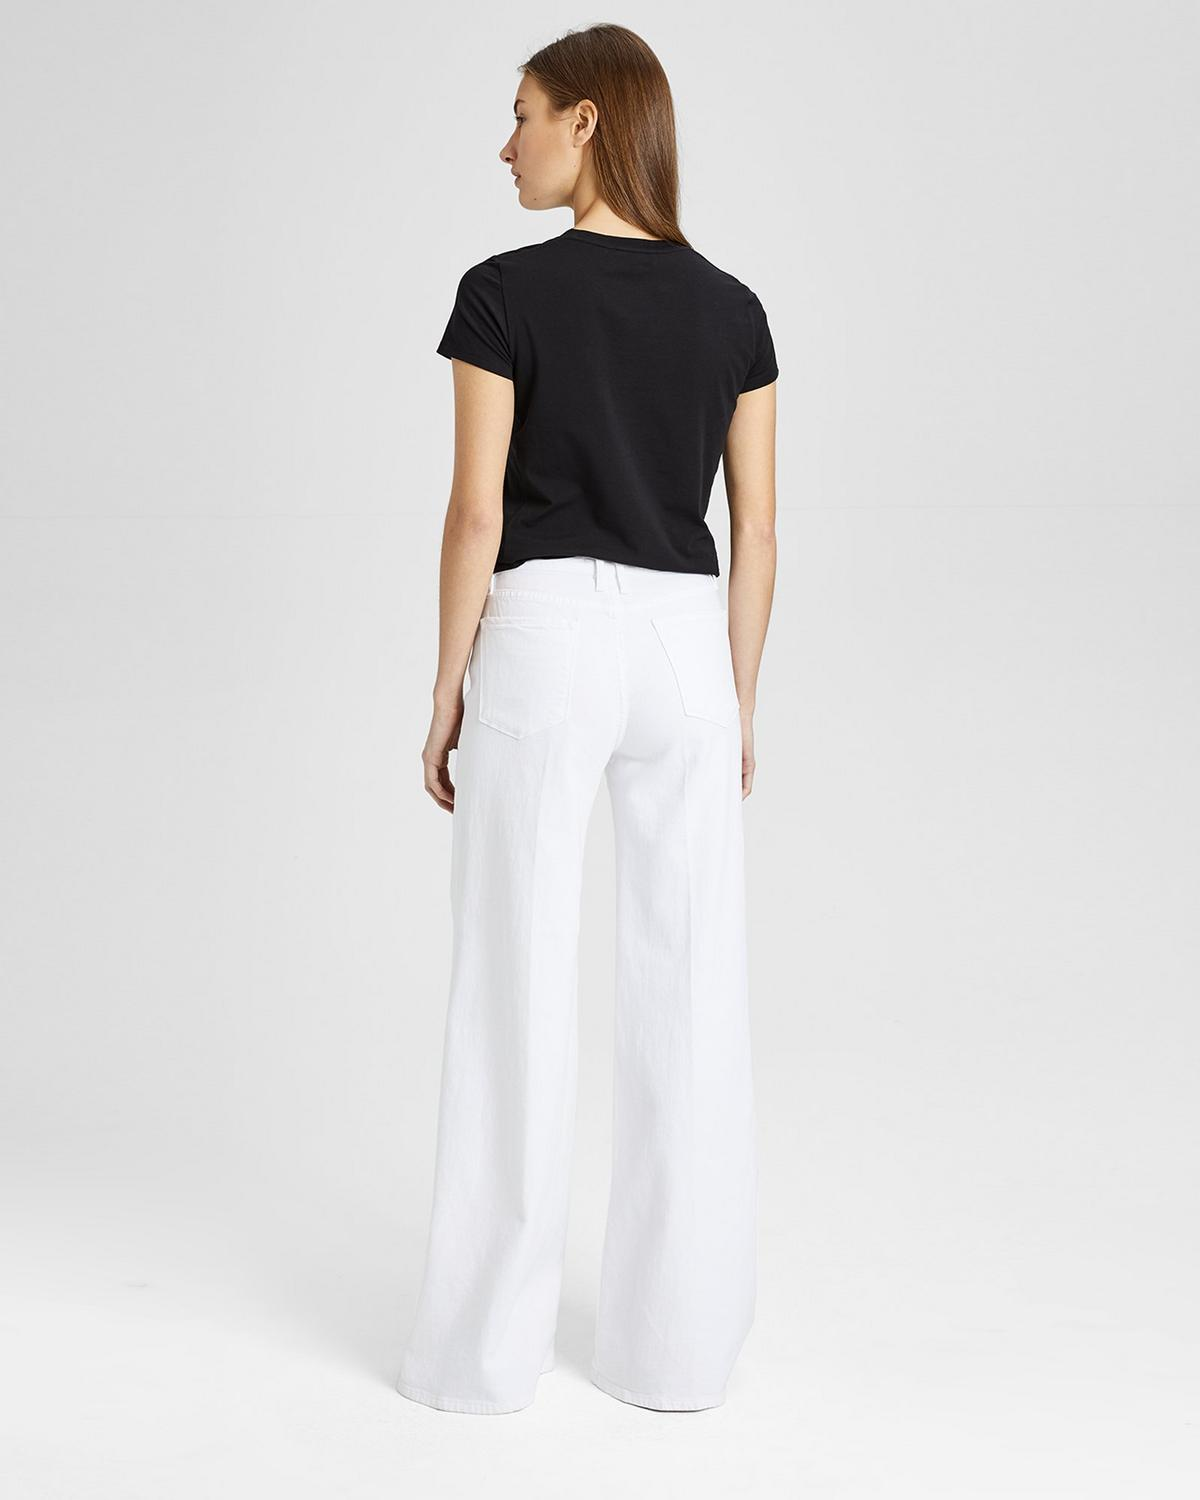 Free Shipping Top Quality FRAME Le Palazzo Pants Outlet Get Authentic Limited New tXGBth